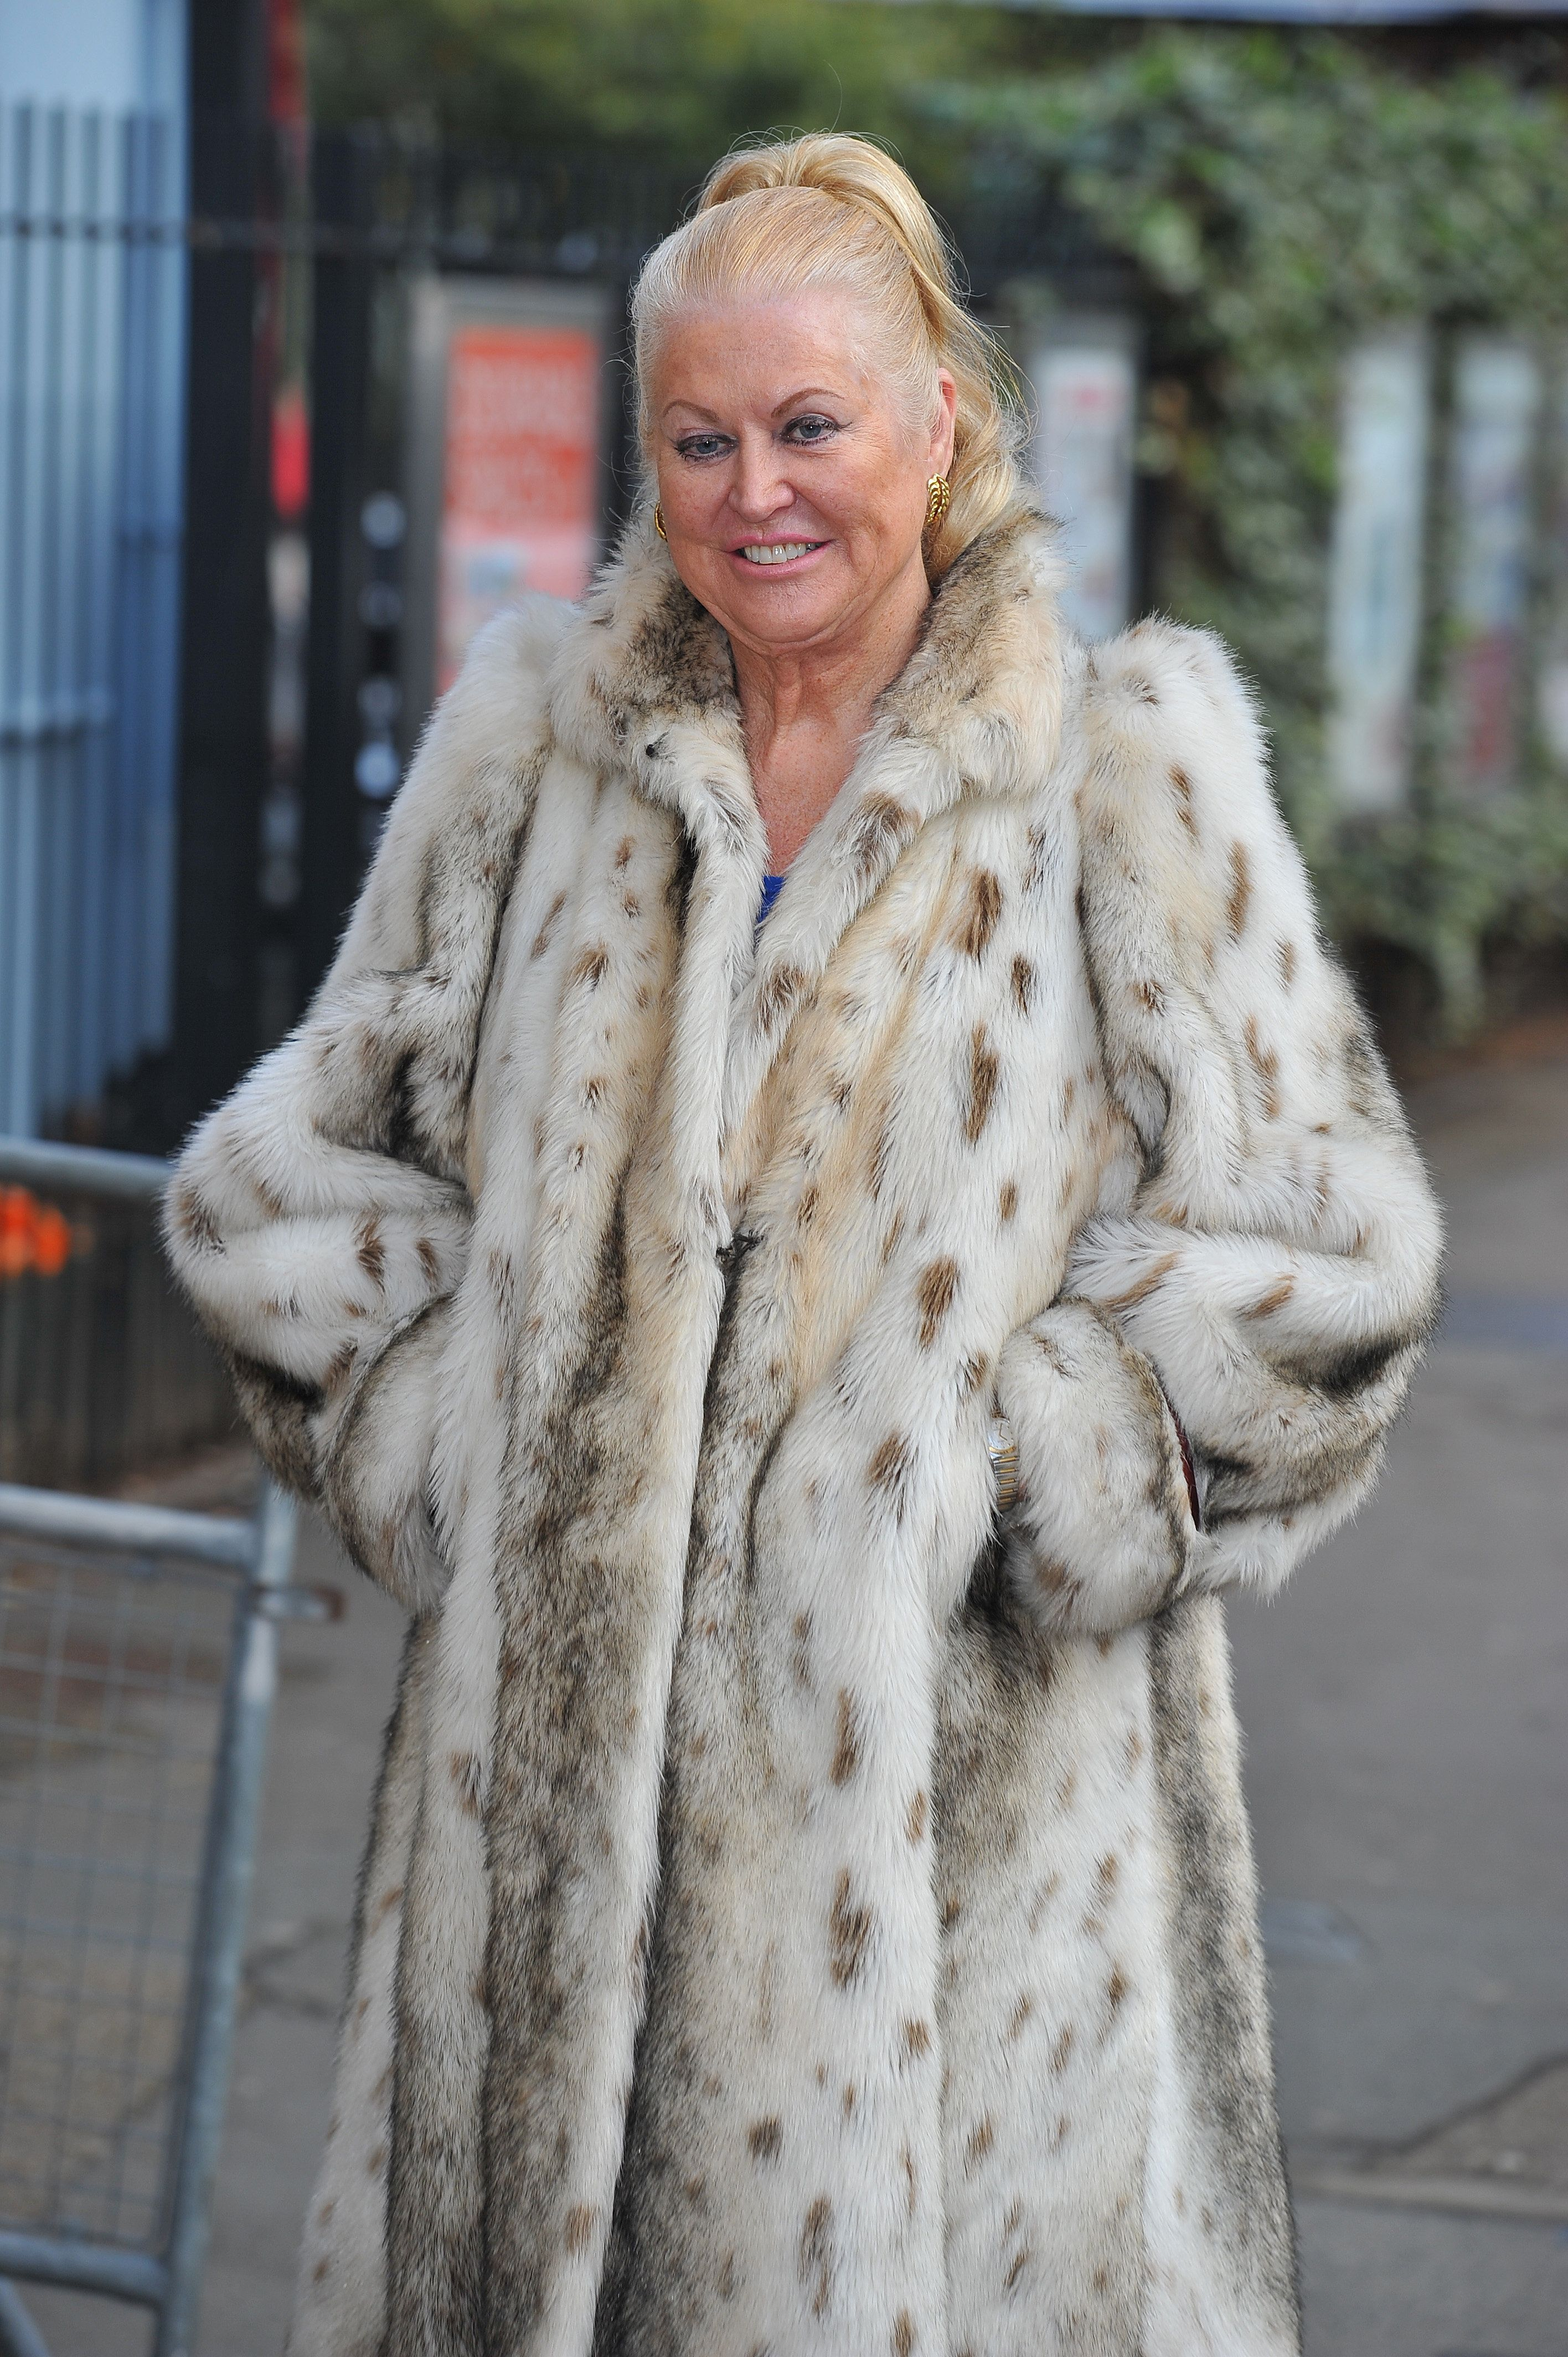 'Celebrity Big Brother' Fans Could Soon Be Tuning Into 'The Kim Woodburn